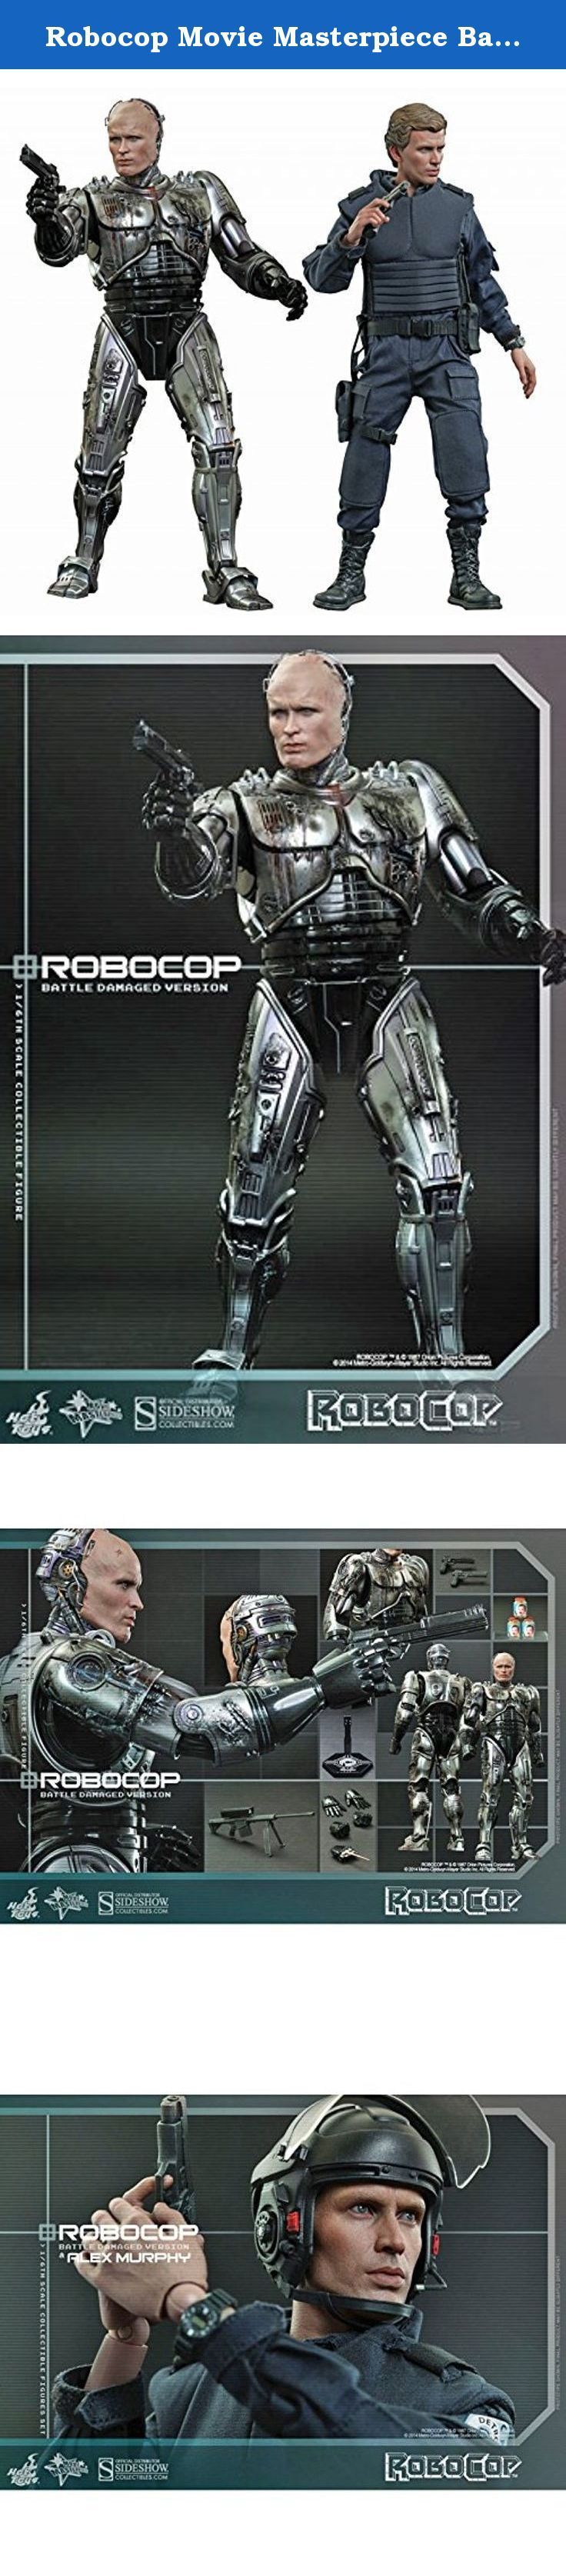 """Robocop Movie Masterpiece Battle-Damaged Robocop & Alex Murphy 1:6 Diecast Figure. Sideshow Collectibles and Hot Toys are delighted to present a special collectible figures set which includes the highly-anticipated sixth scale collectible figures of RoboCop (Battle Damaged Version) and Alex Murphy in police uniform! It is the first ever official sixth scale collectible figure which features a remarkable likeness of Peter Weller who played the unforgettable man who was brutally """"murdered""""…"""